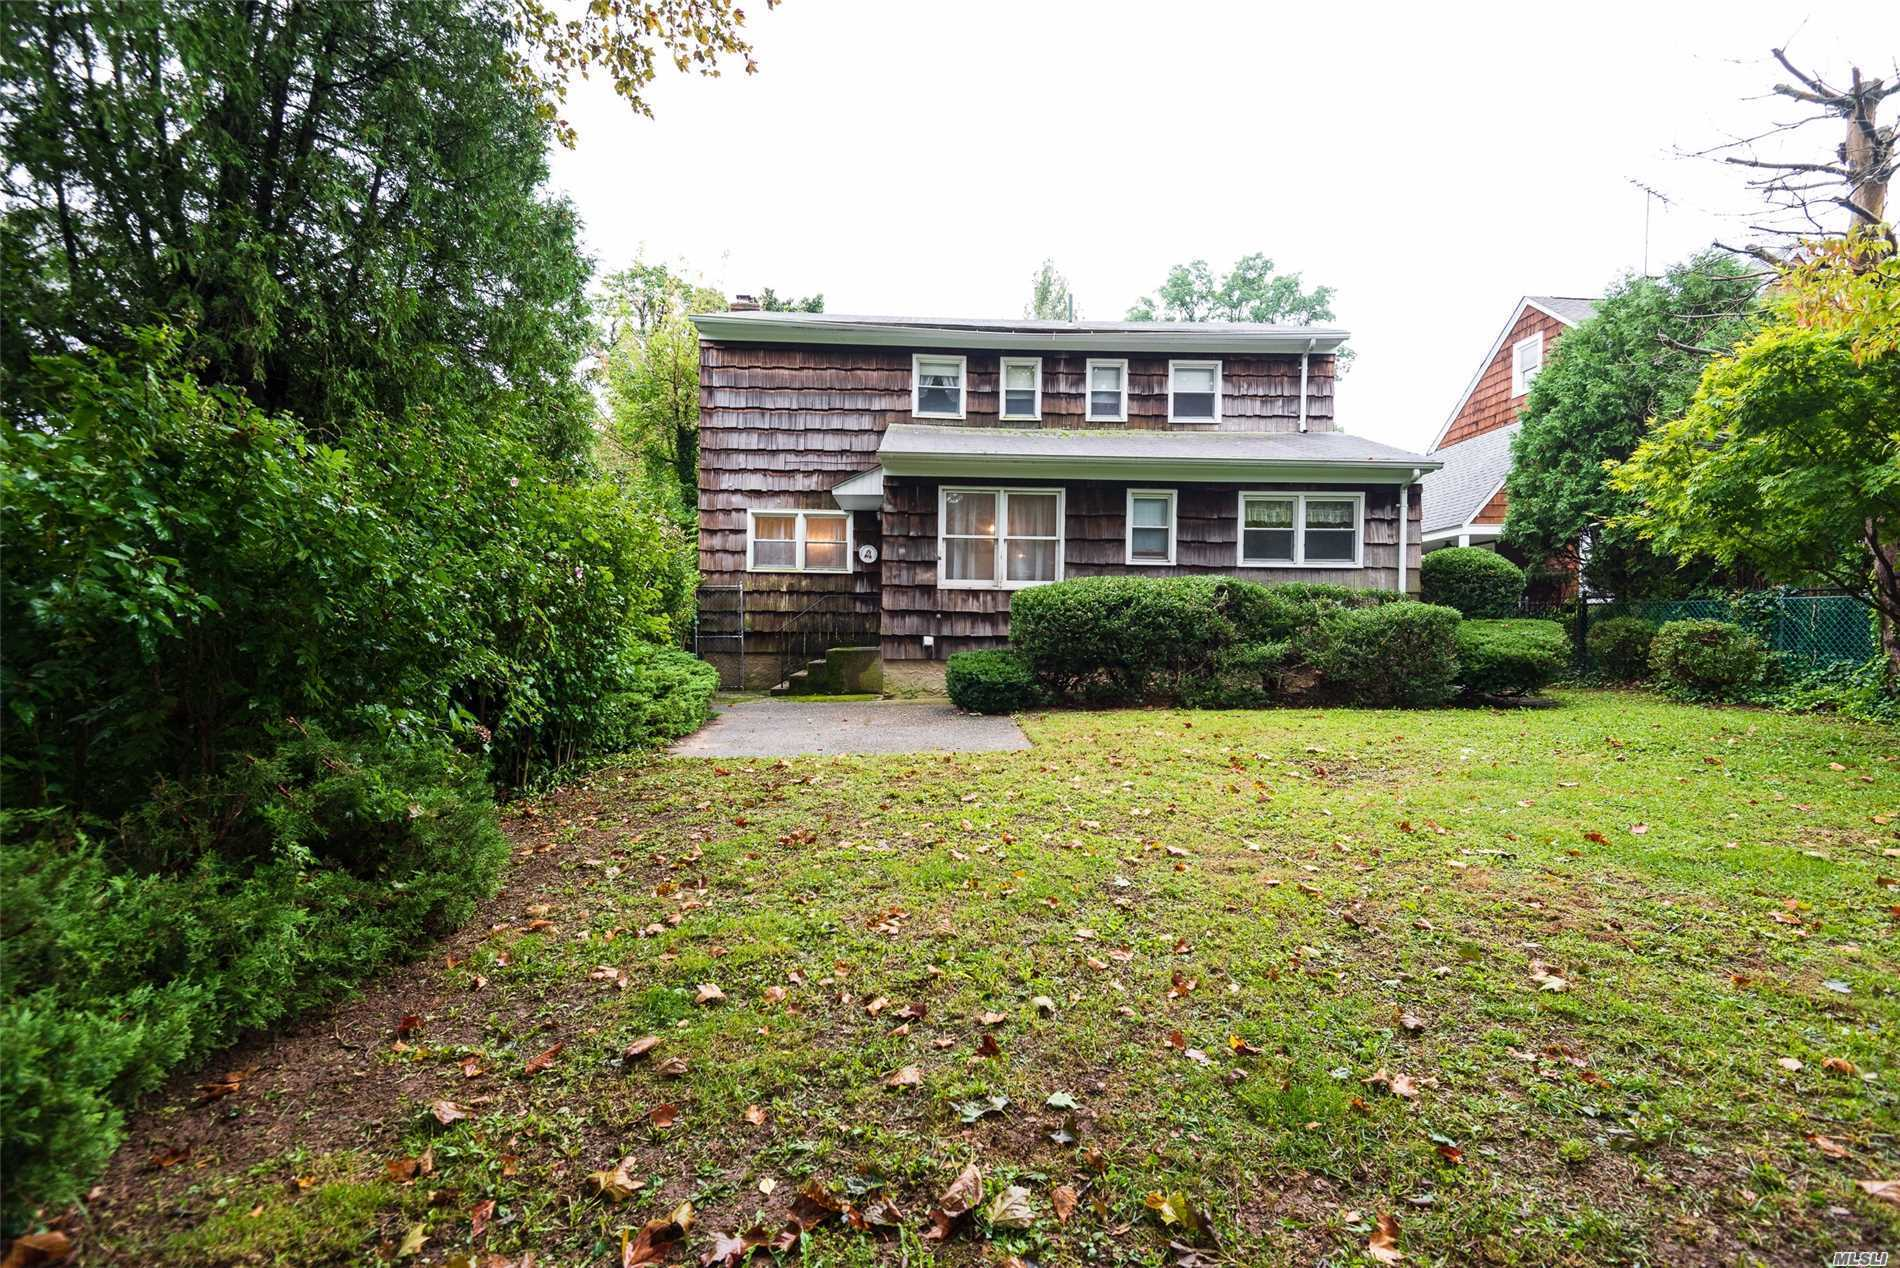 Great Opportunity To Own Classical Colonial 5 - Bedrooms, 2.5 Bathroom House In The Heart Of Locust Valley. Living Rm With The Fireplace, Dinning Rm, Door To Nice And Private Back Yard, Den Or Office Rm, Entry To Garage. 2 Fl - Has Spacious Mbr With Full Bath, 4-Bedr, 1-Full Bath. Attic For Storage. Lots Of Closets, Great Layout. A True Gem. Don't Miss It.. Sold As Is.